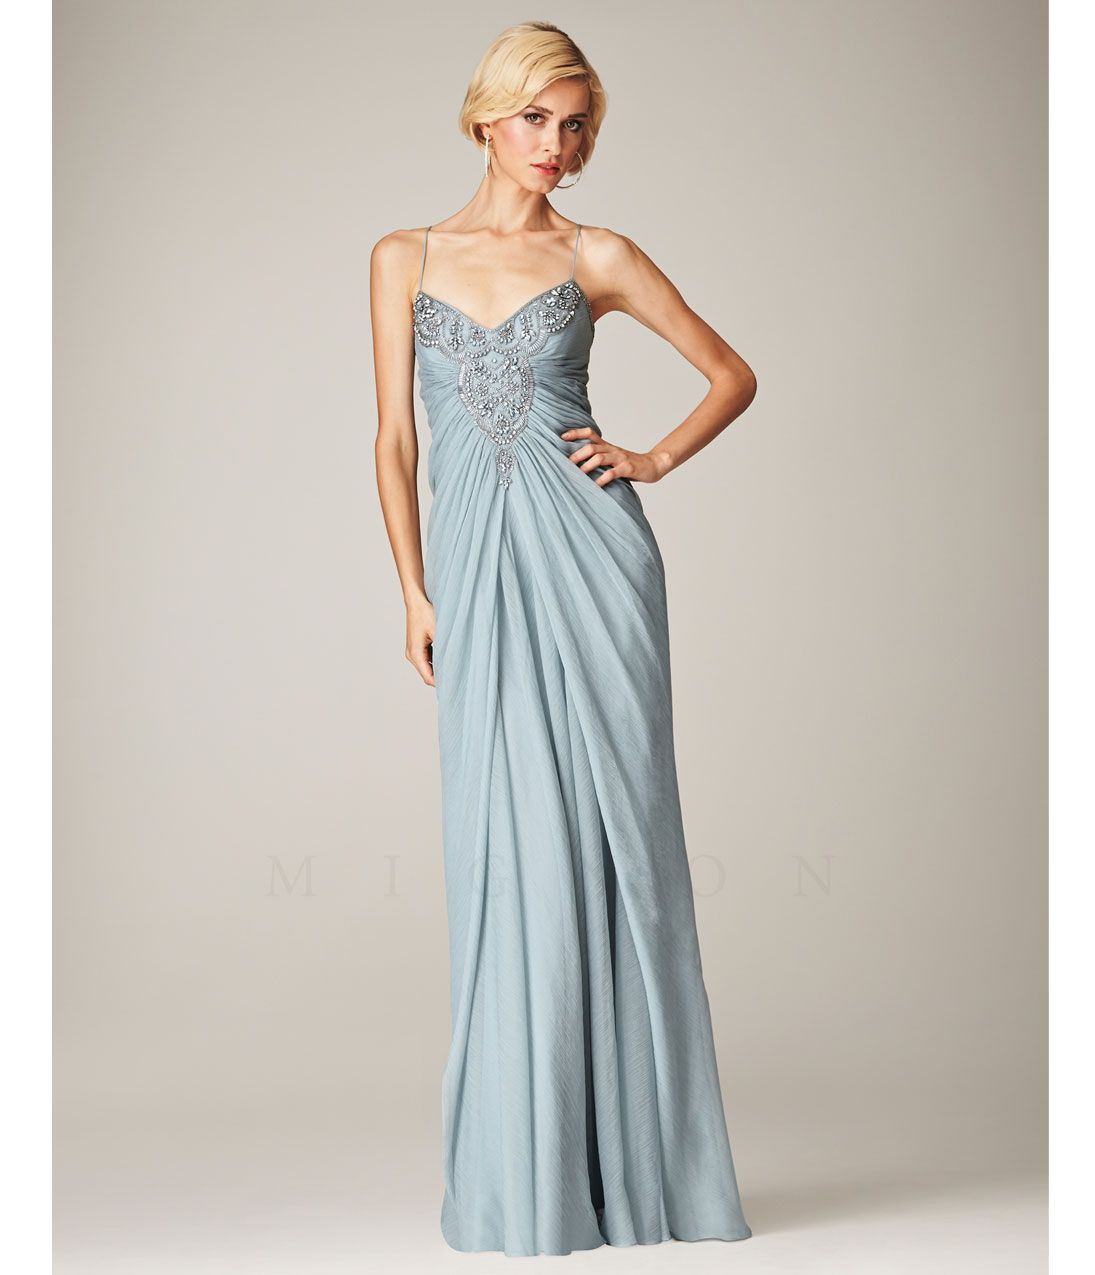 Unique Vintage | Vintage prom, Blue beads and Retro dress